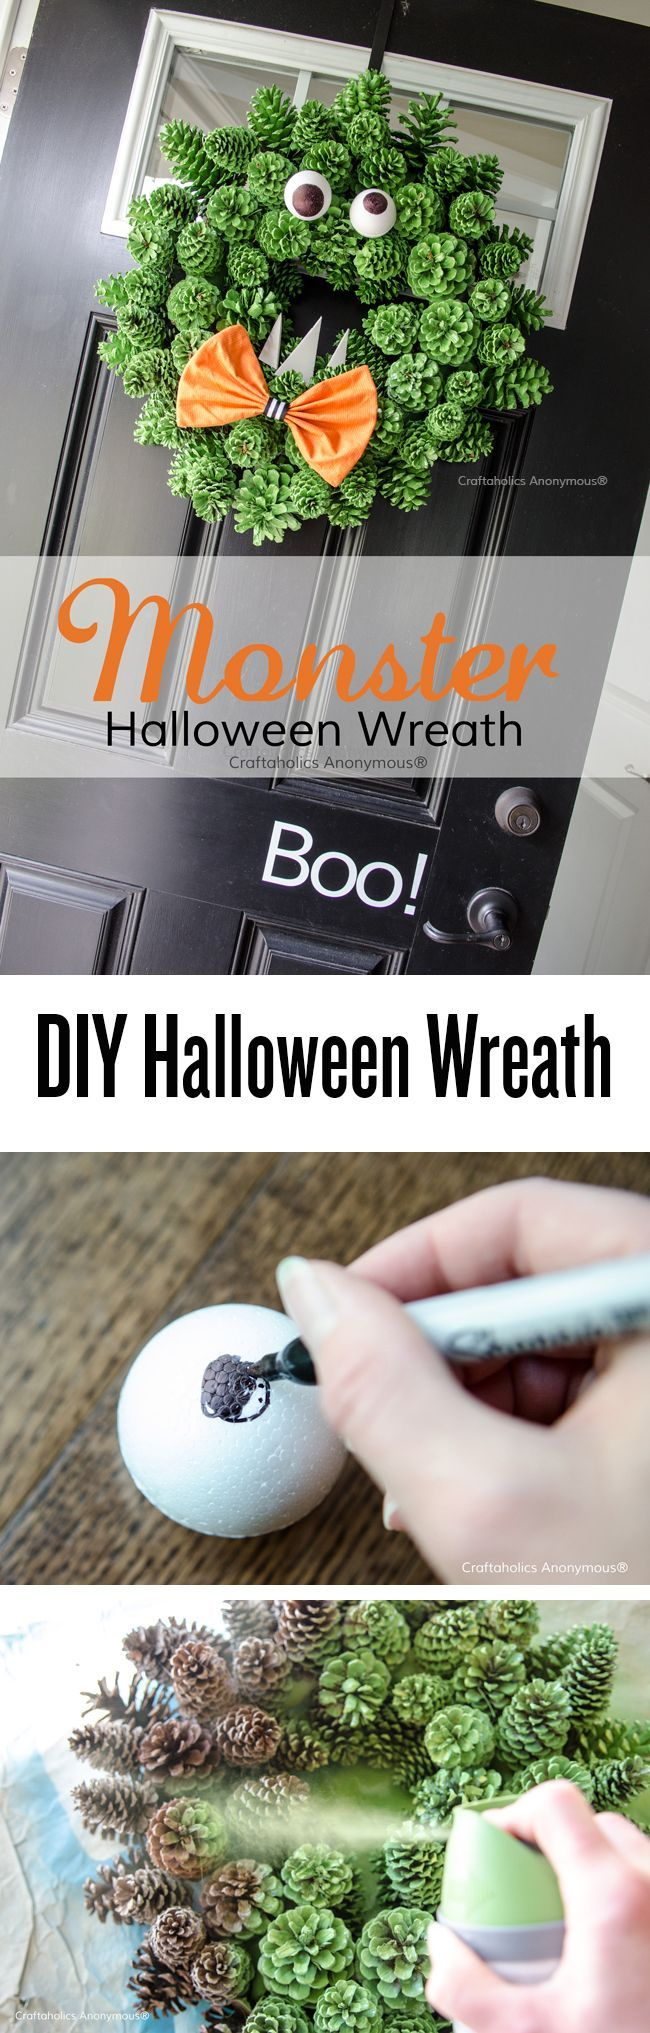 One of the most clever DIY Halloween wreaths! Turn a pinecone wreath into a monster with a little spray paint. Love this idea!